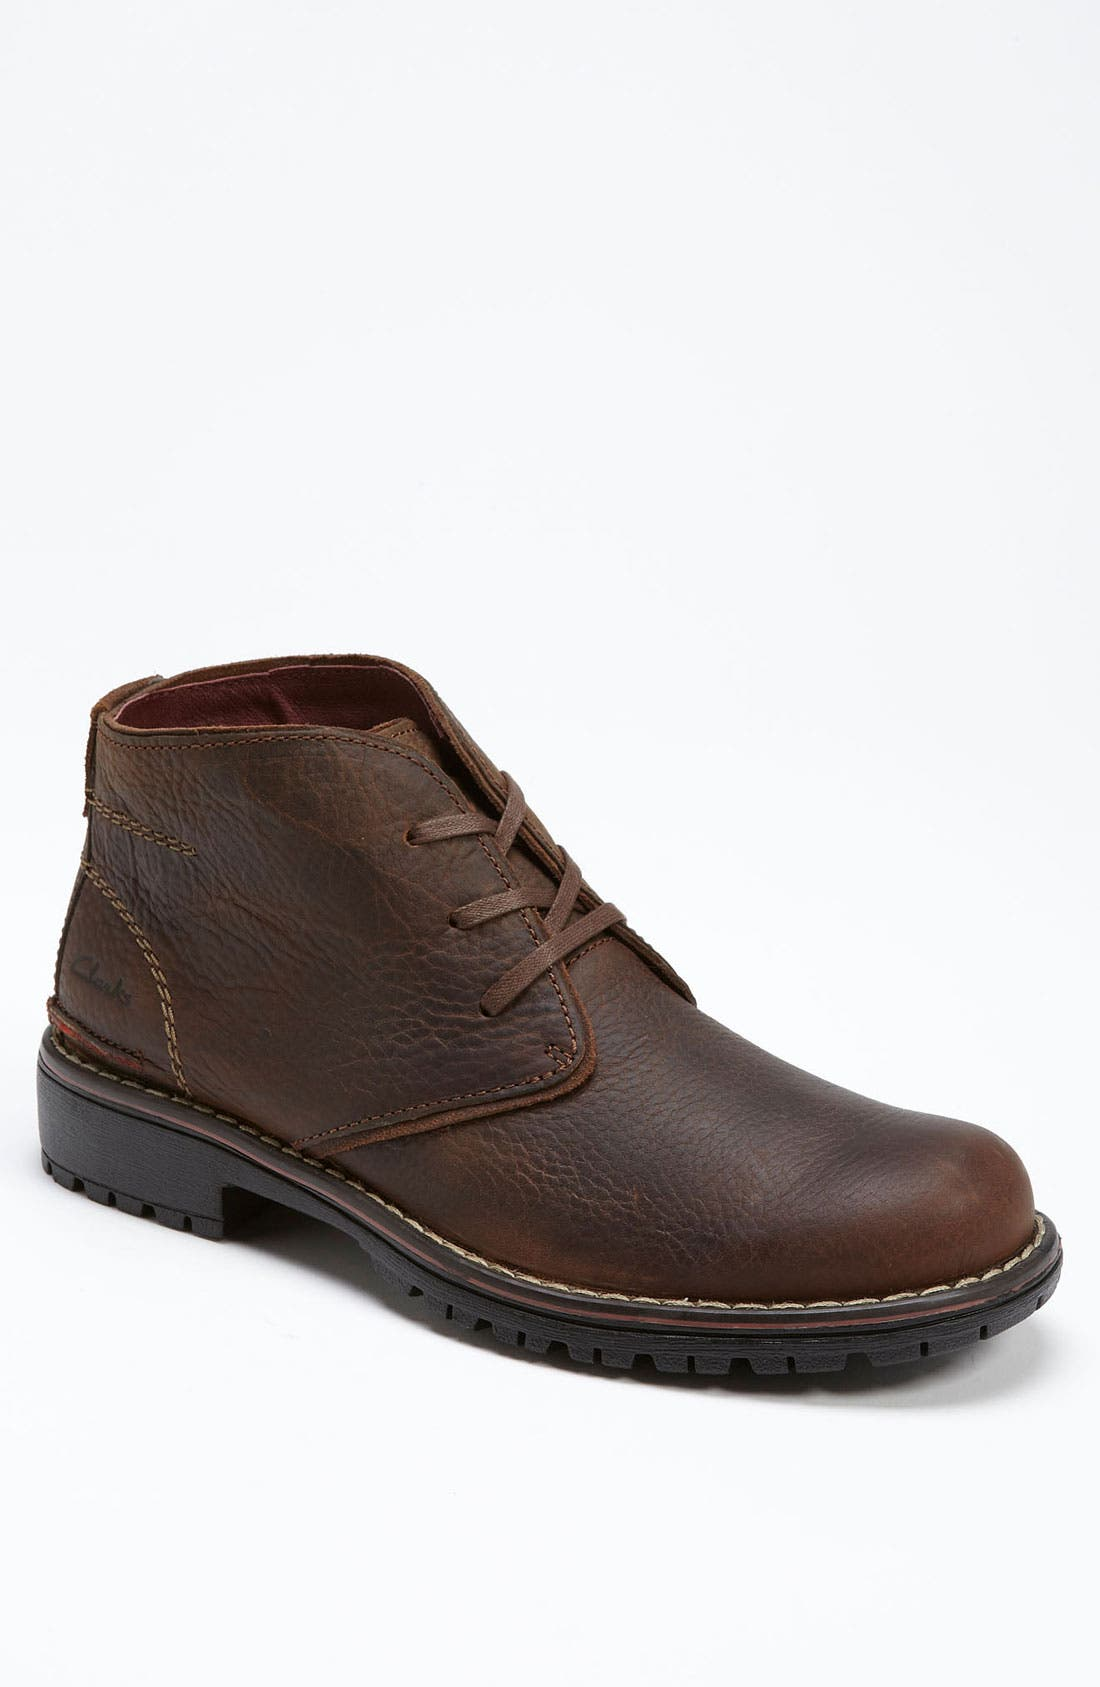 Alternate Image 1 Selected - Clarks® 'Roar' Chukka Boot